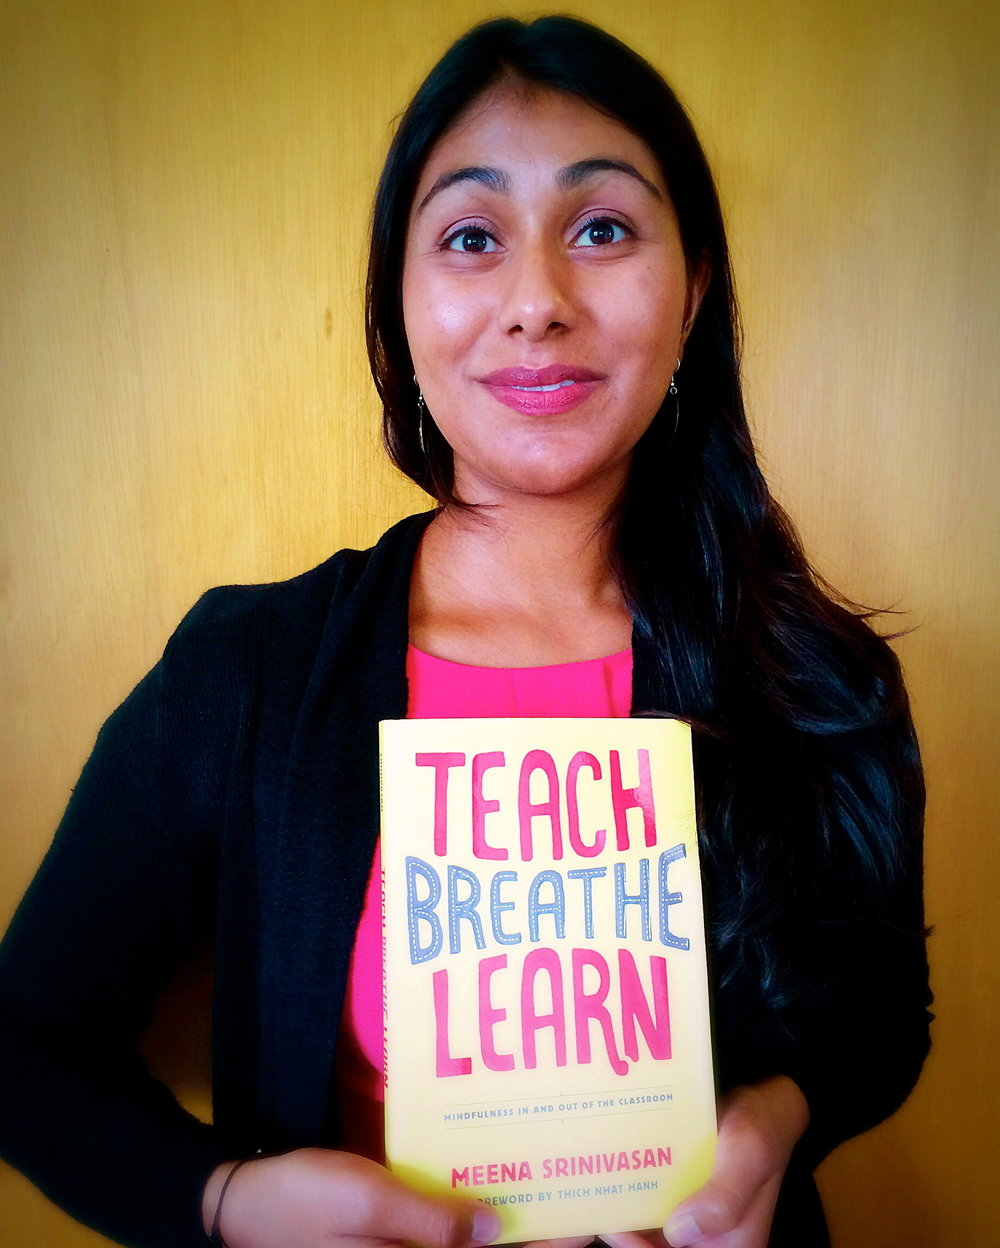 "- ""As an accomplished international educator and dedicated mindfulness practitioner, Meena Srinivasan brings these two worlds together in this compelling book, showing how to embed mindfulness into teaching and life.  Meena's current work implementing Social Emotional Learning in the Oakland public school district embodies her commitment to transforming our nation's education system from the inside out."" —Congressman Tim Ryan, A Mindful Nation""Teach, Breathe, Learn is a practical guide helping teachers find their own unique path to deeper fulfillment and efficacy first in their own lives and then in their work. Meena is a precious ambassador of mindfulness, concretely showing us how to bring mindfulness to the 'front lines' of the classroom, the staffroom, and all throughout our day. The wisdom in this book is grounded in Meena's personal experience of applying mindfulness and compassion to respond rather than react to situations, in order to nurture what is best in us and in our students and skillfully take care of difficult moments."" —Thich Nhat Hanh, Nobel Peace Prize Nominee"